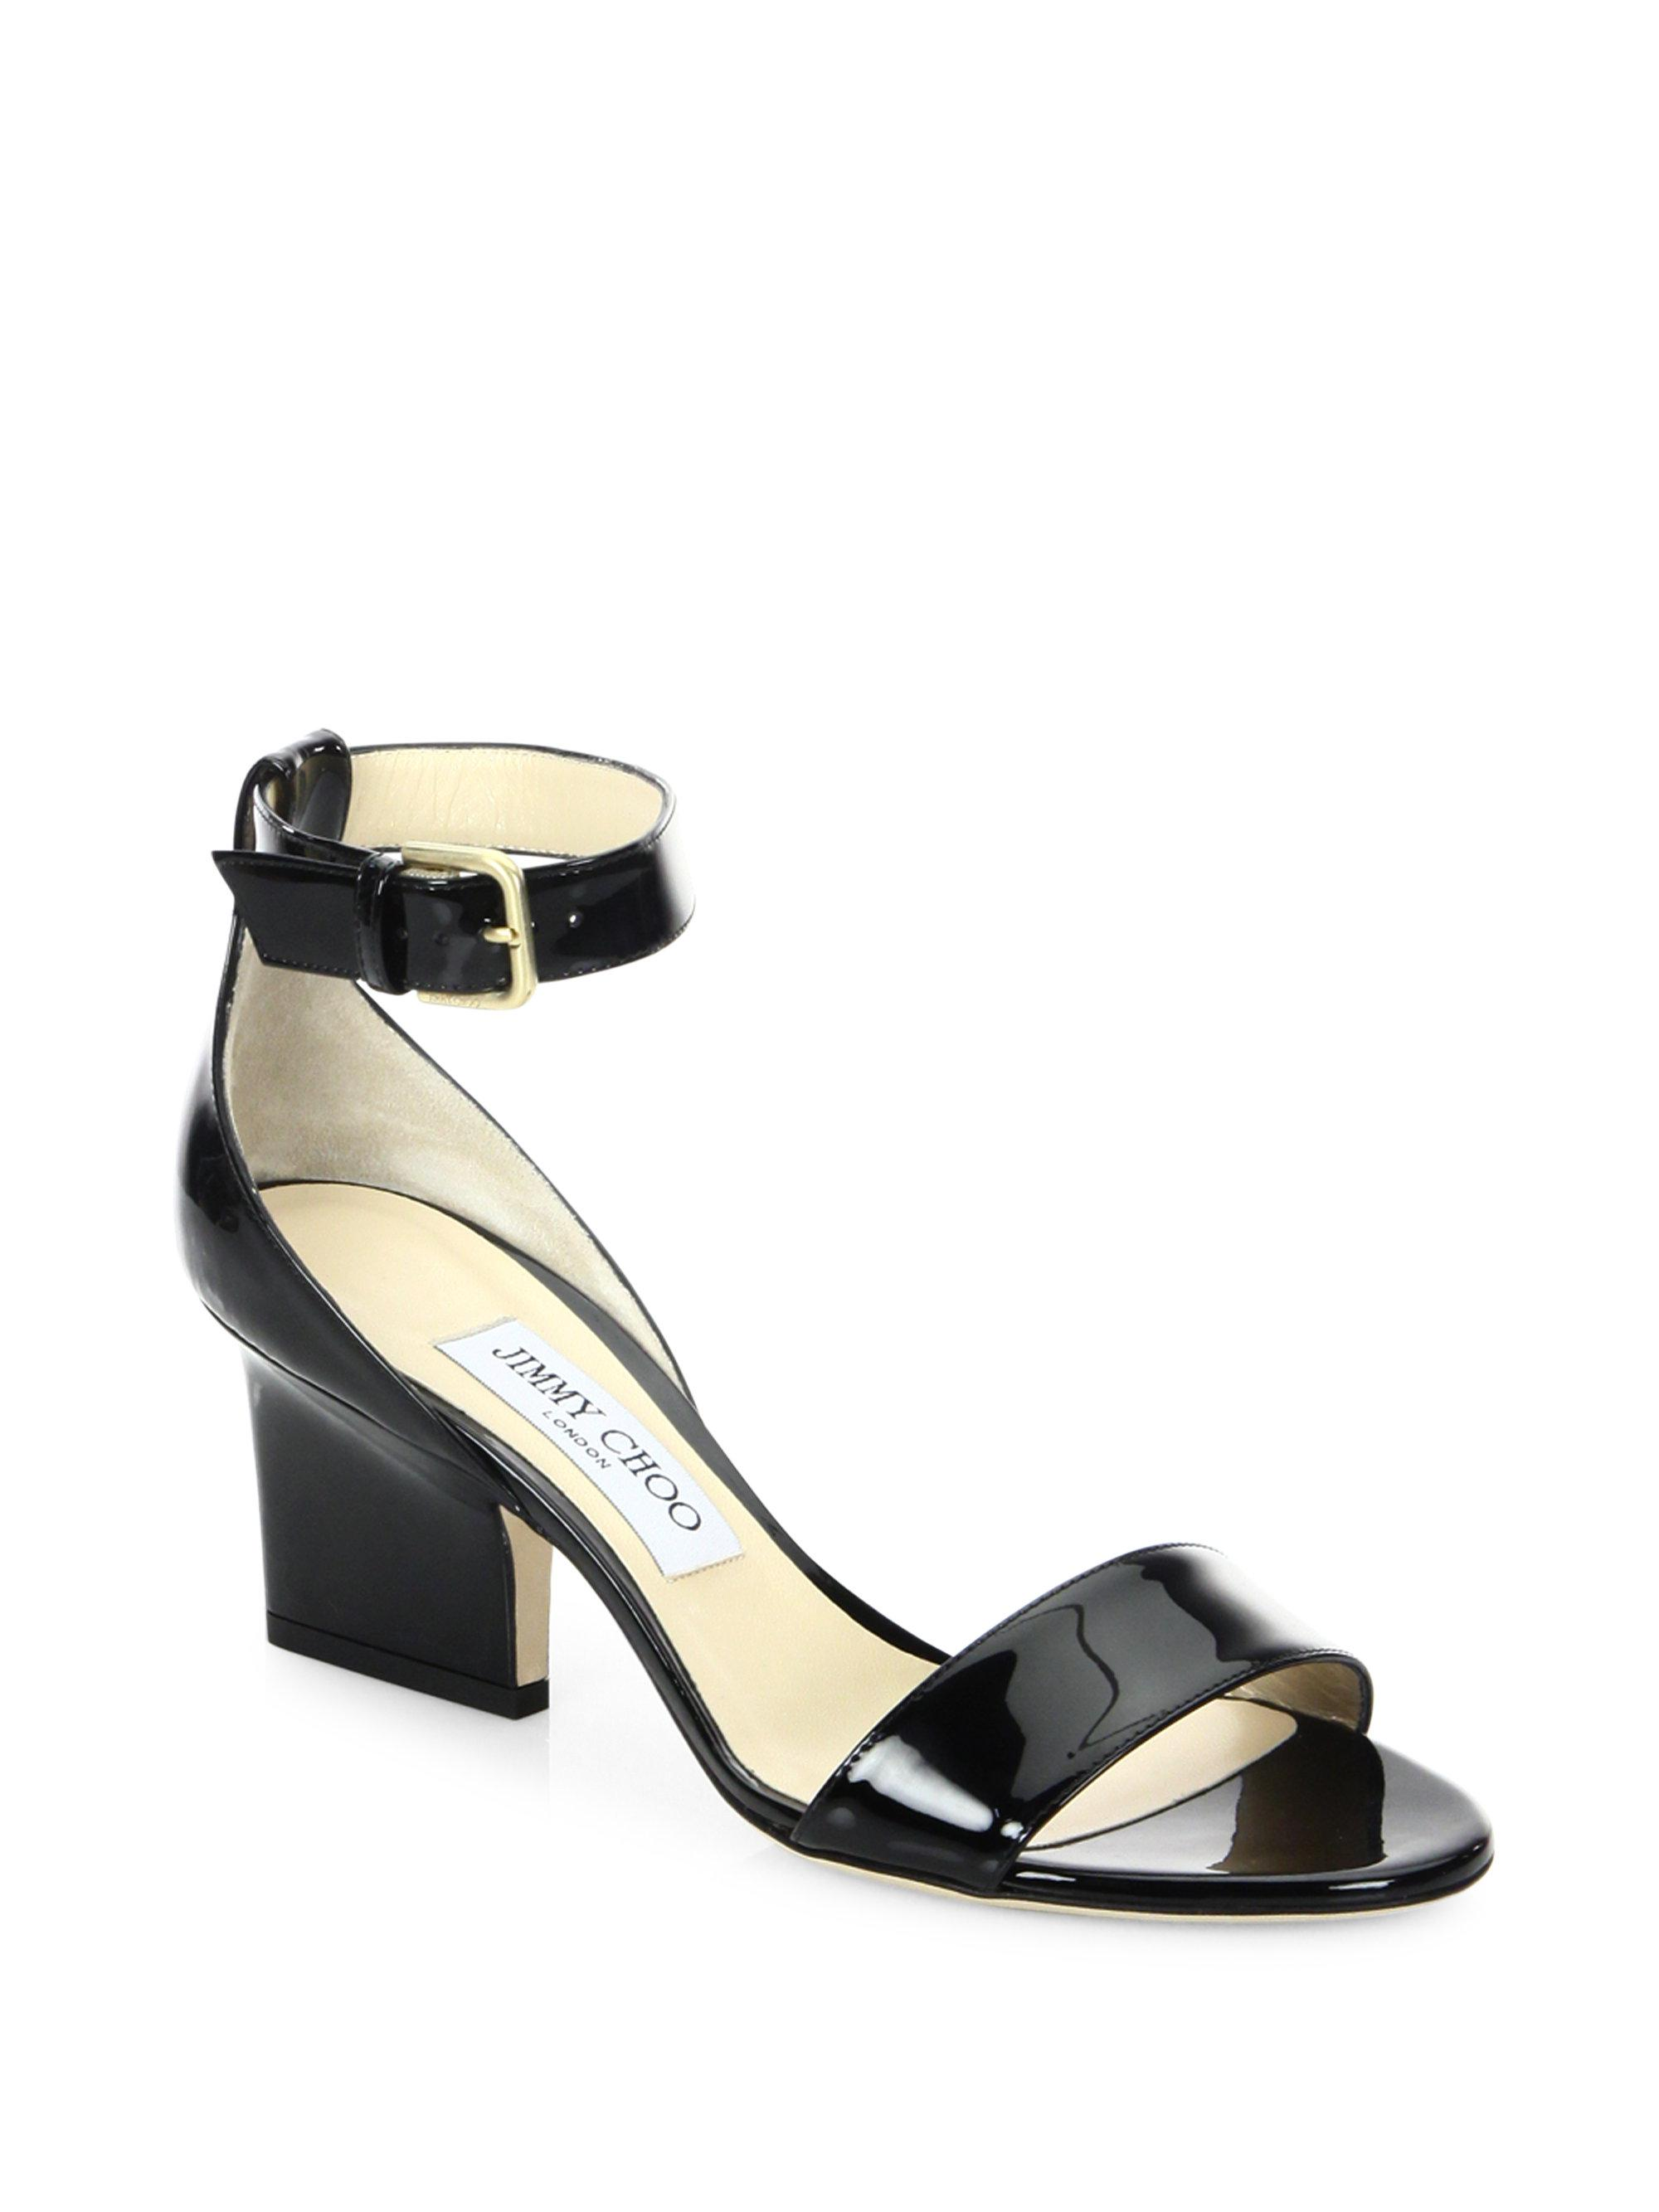 Jimmy Choo Patent Leather T-Strap Sandals free shipping pictures choice sale online cheap amazing price buy cheap countdown package K6pGEaWHyR